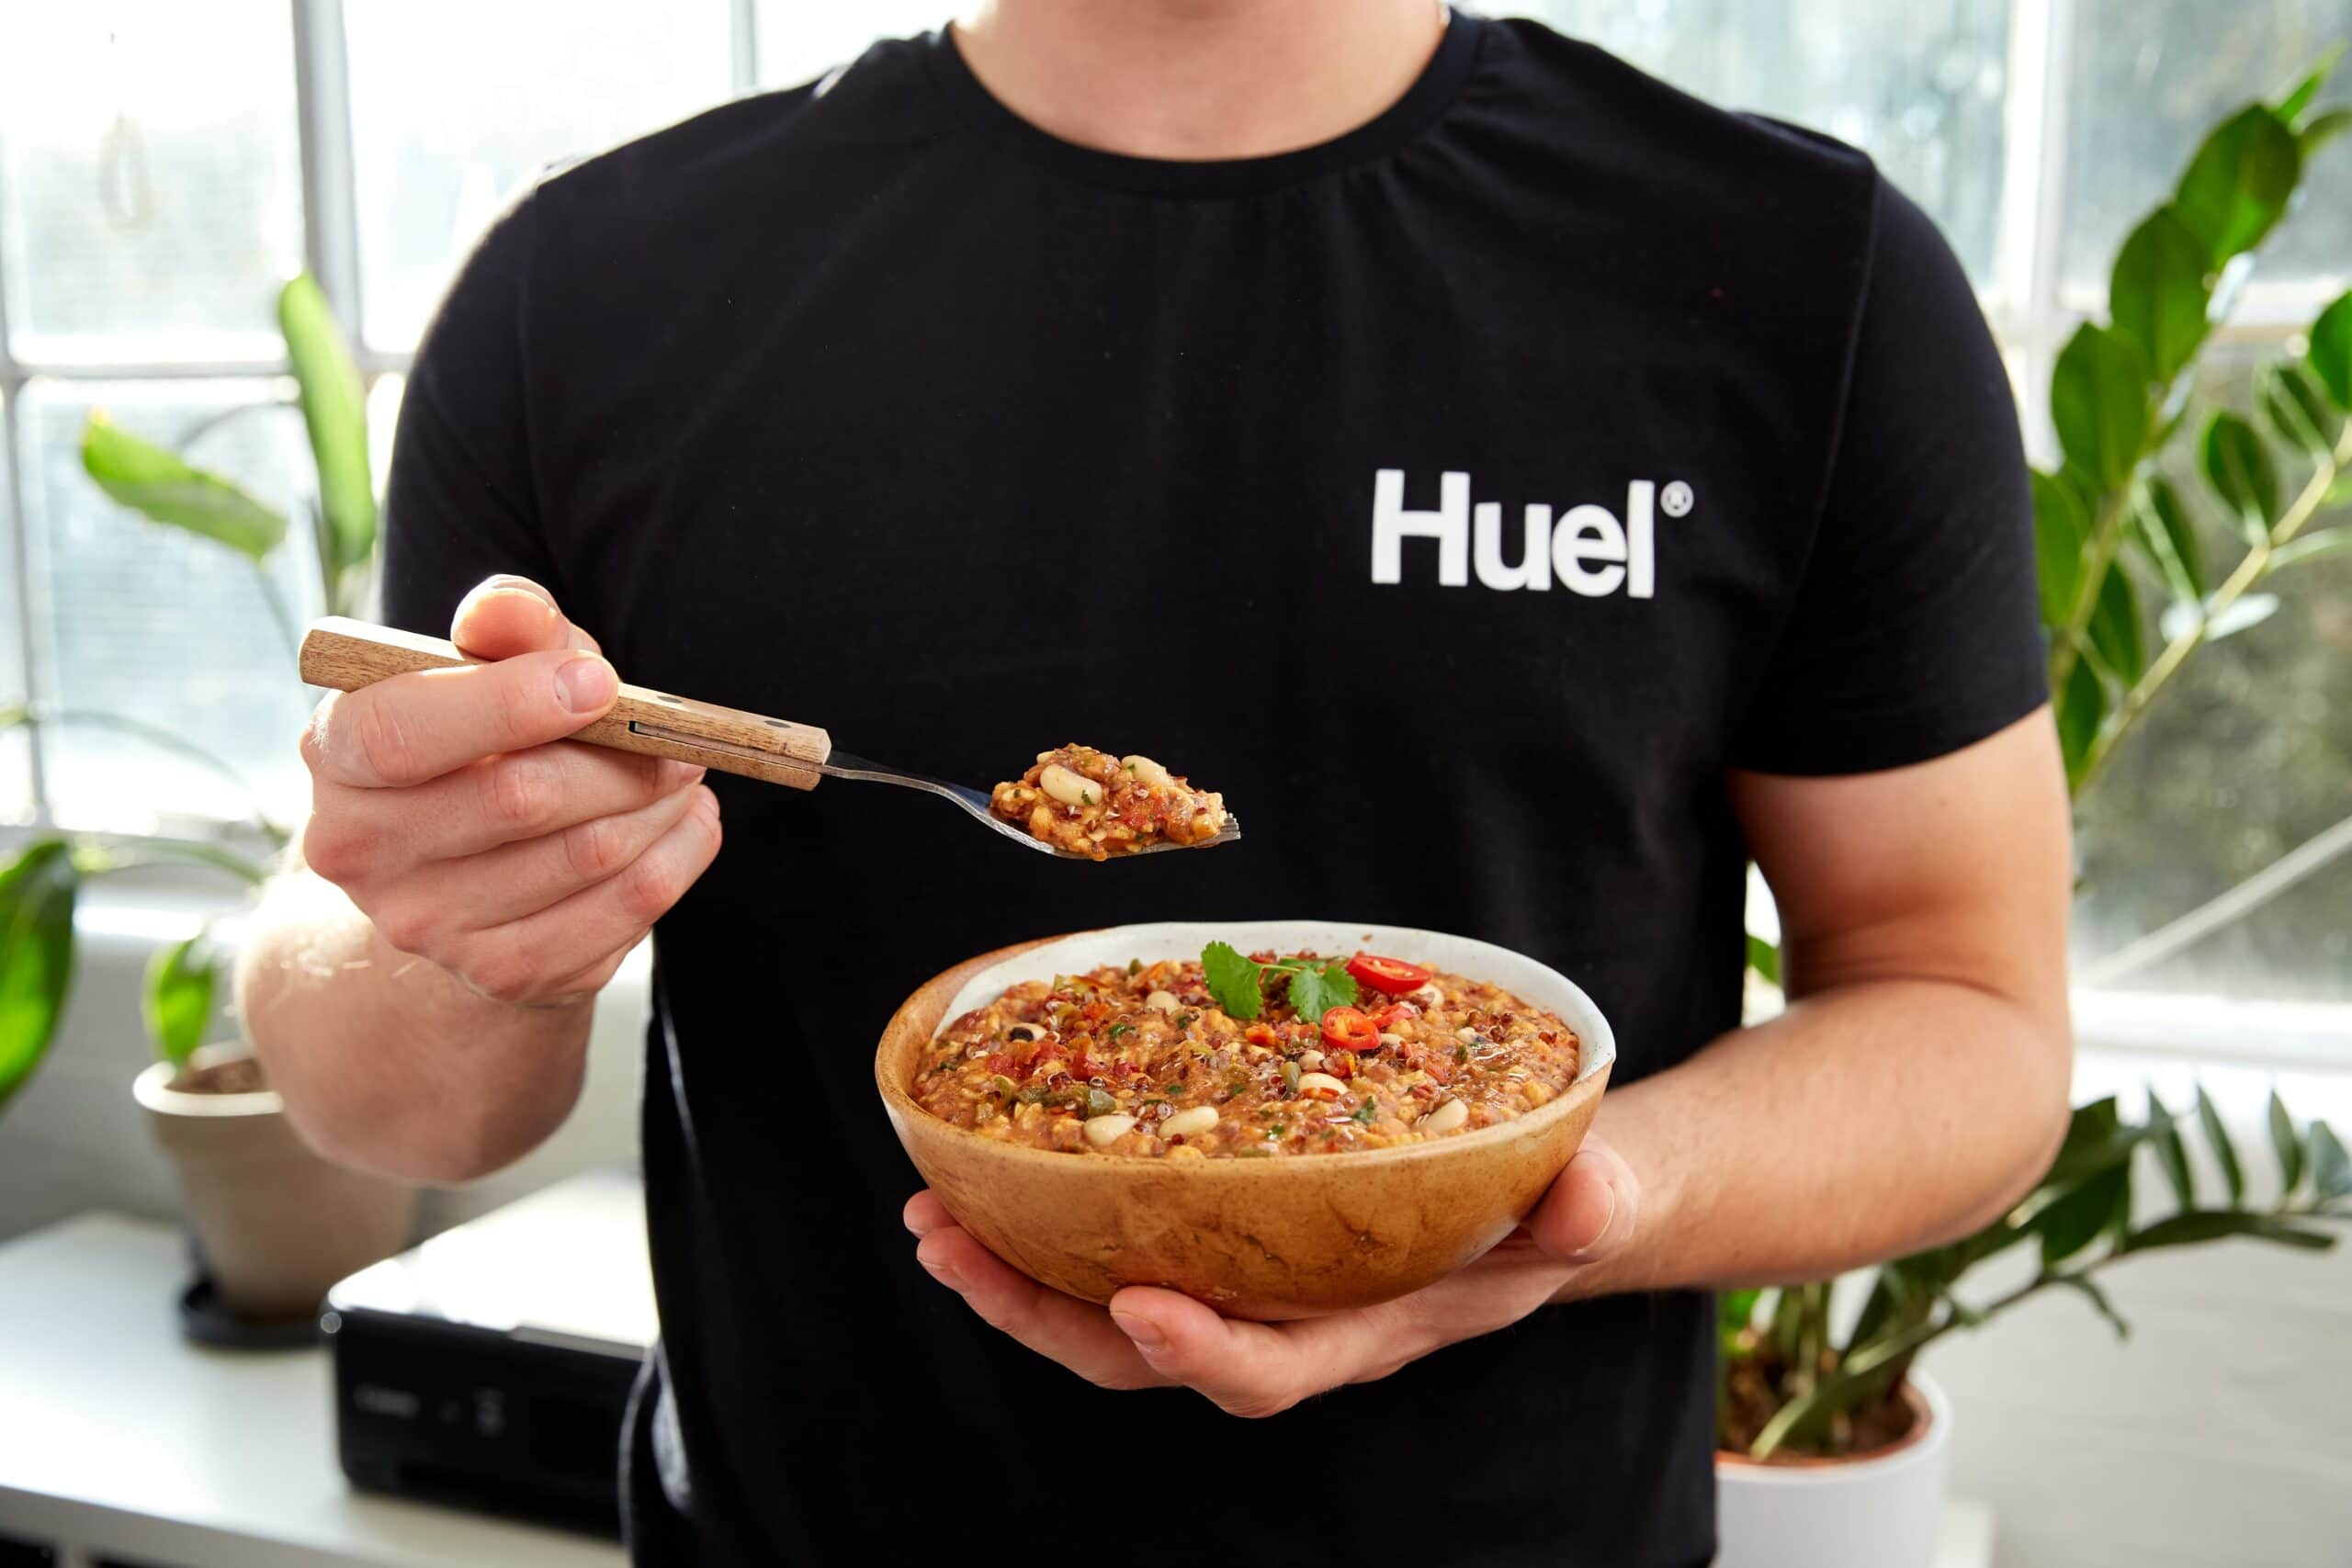 Huel launches new Mexican Chilli flavour Hot & Savoury